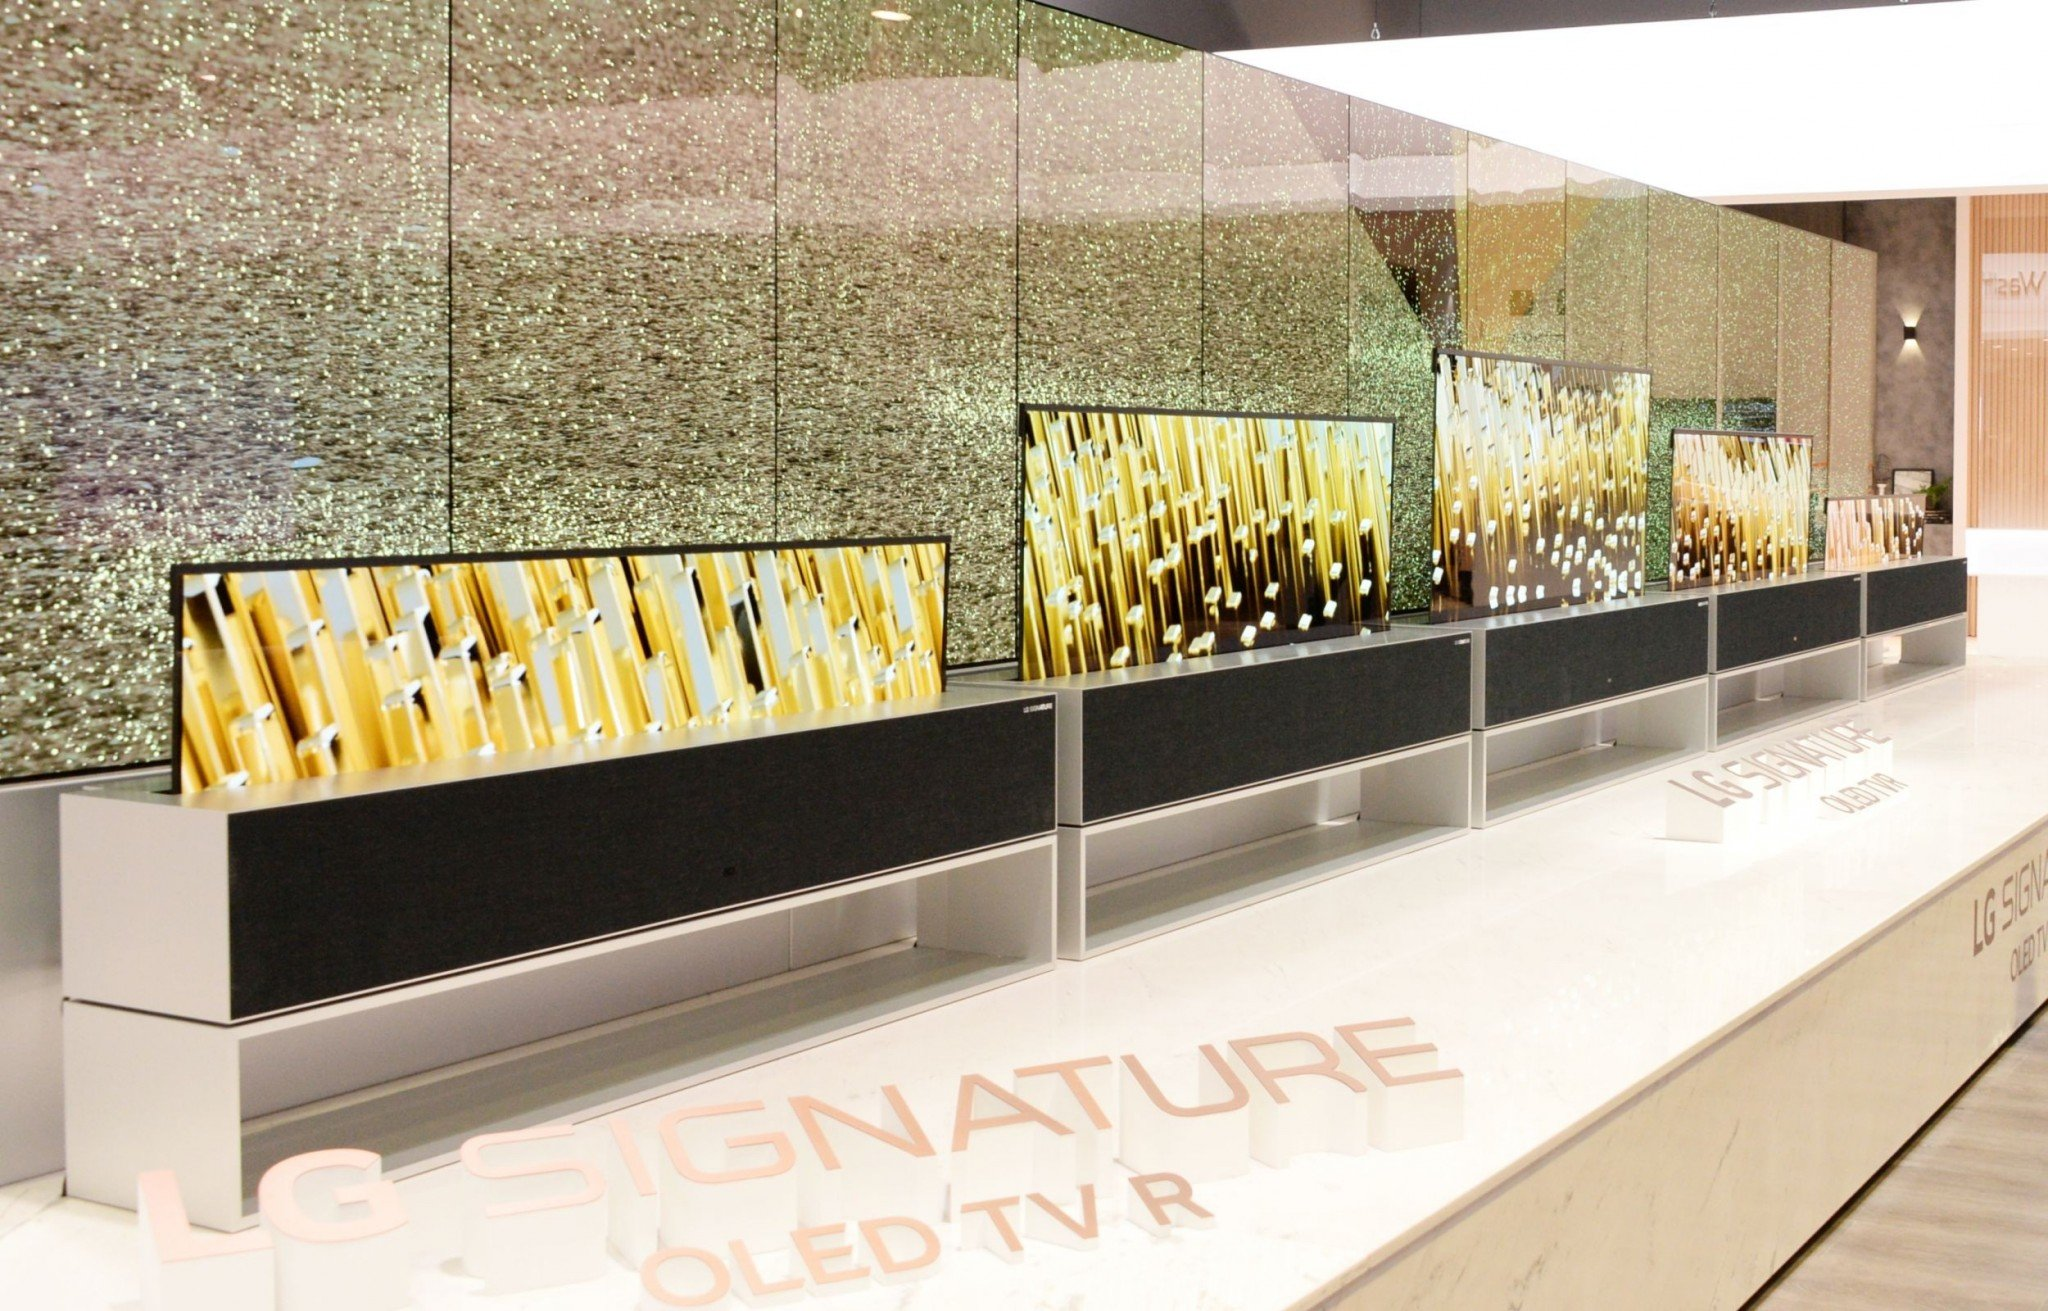 LG OLED TV R Booth 03